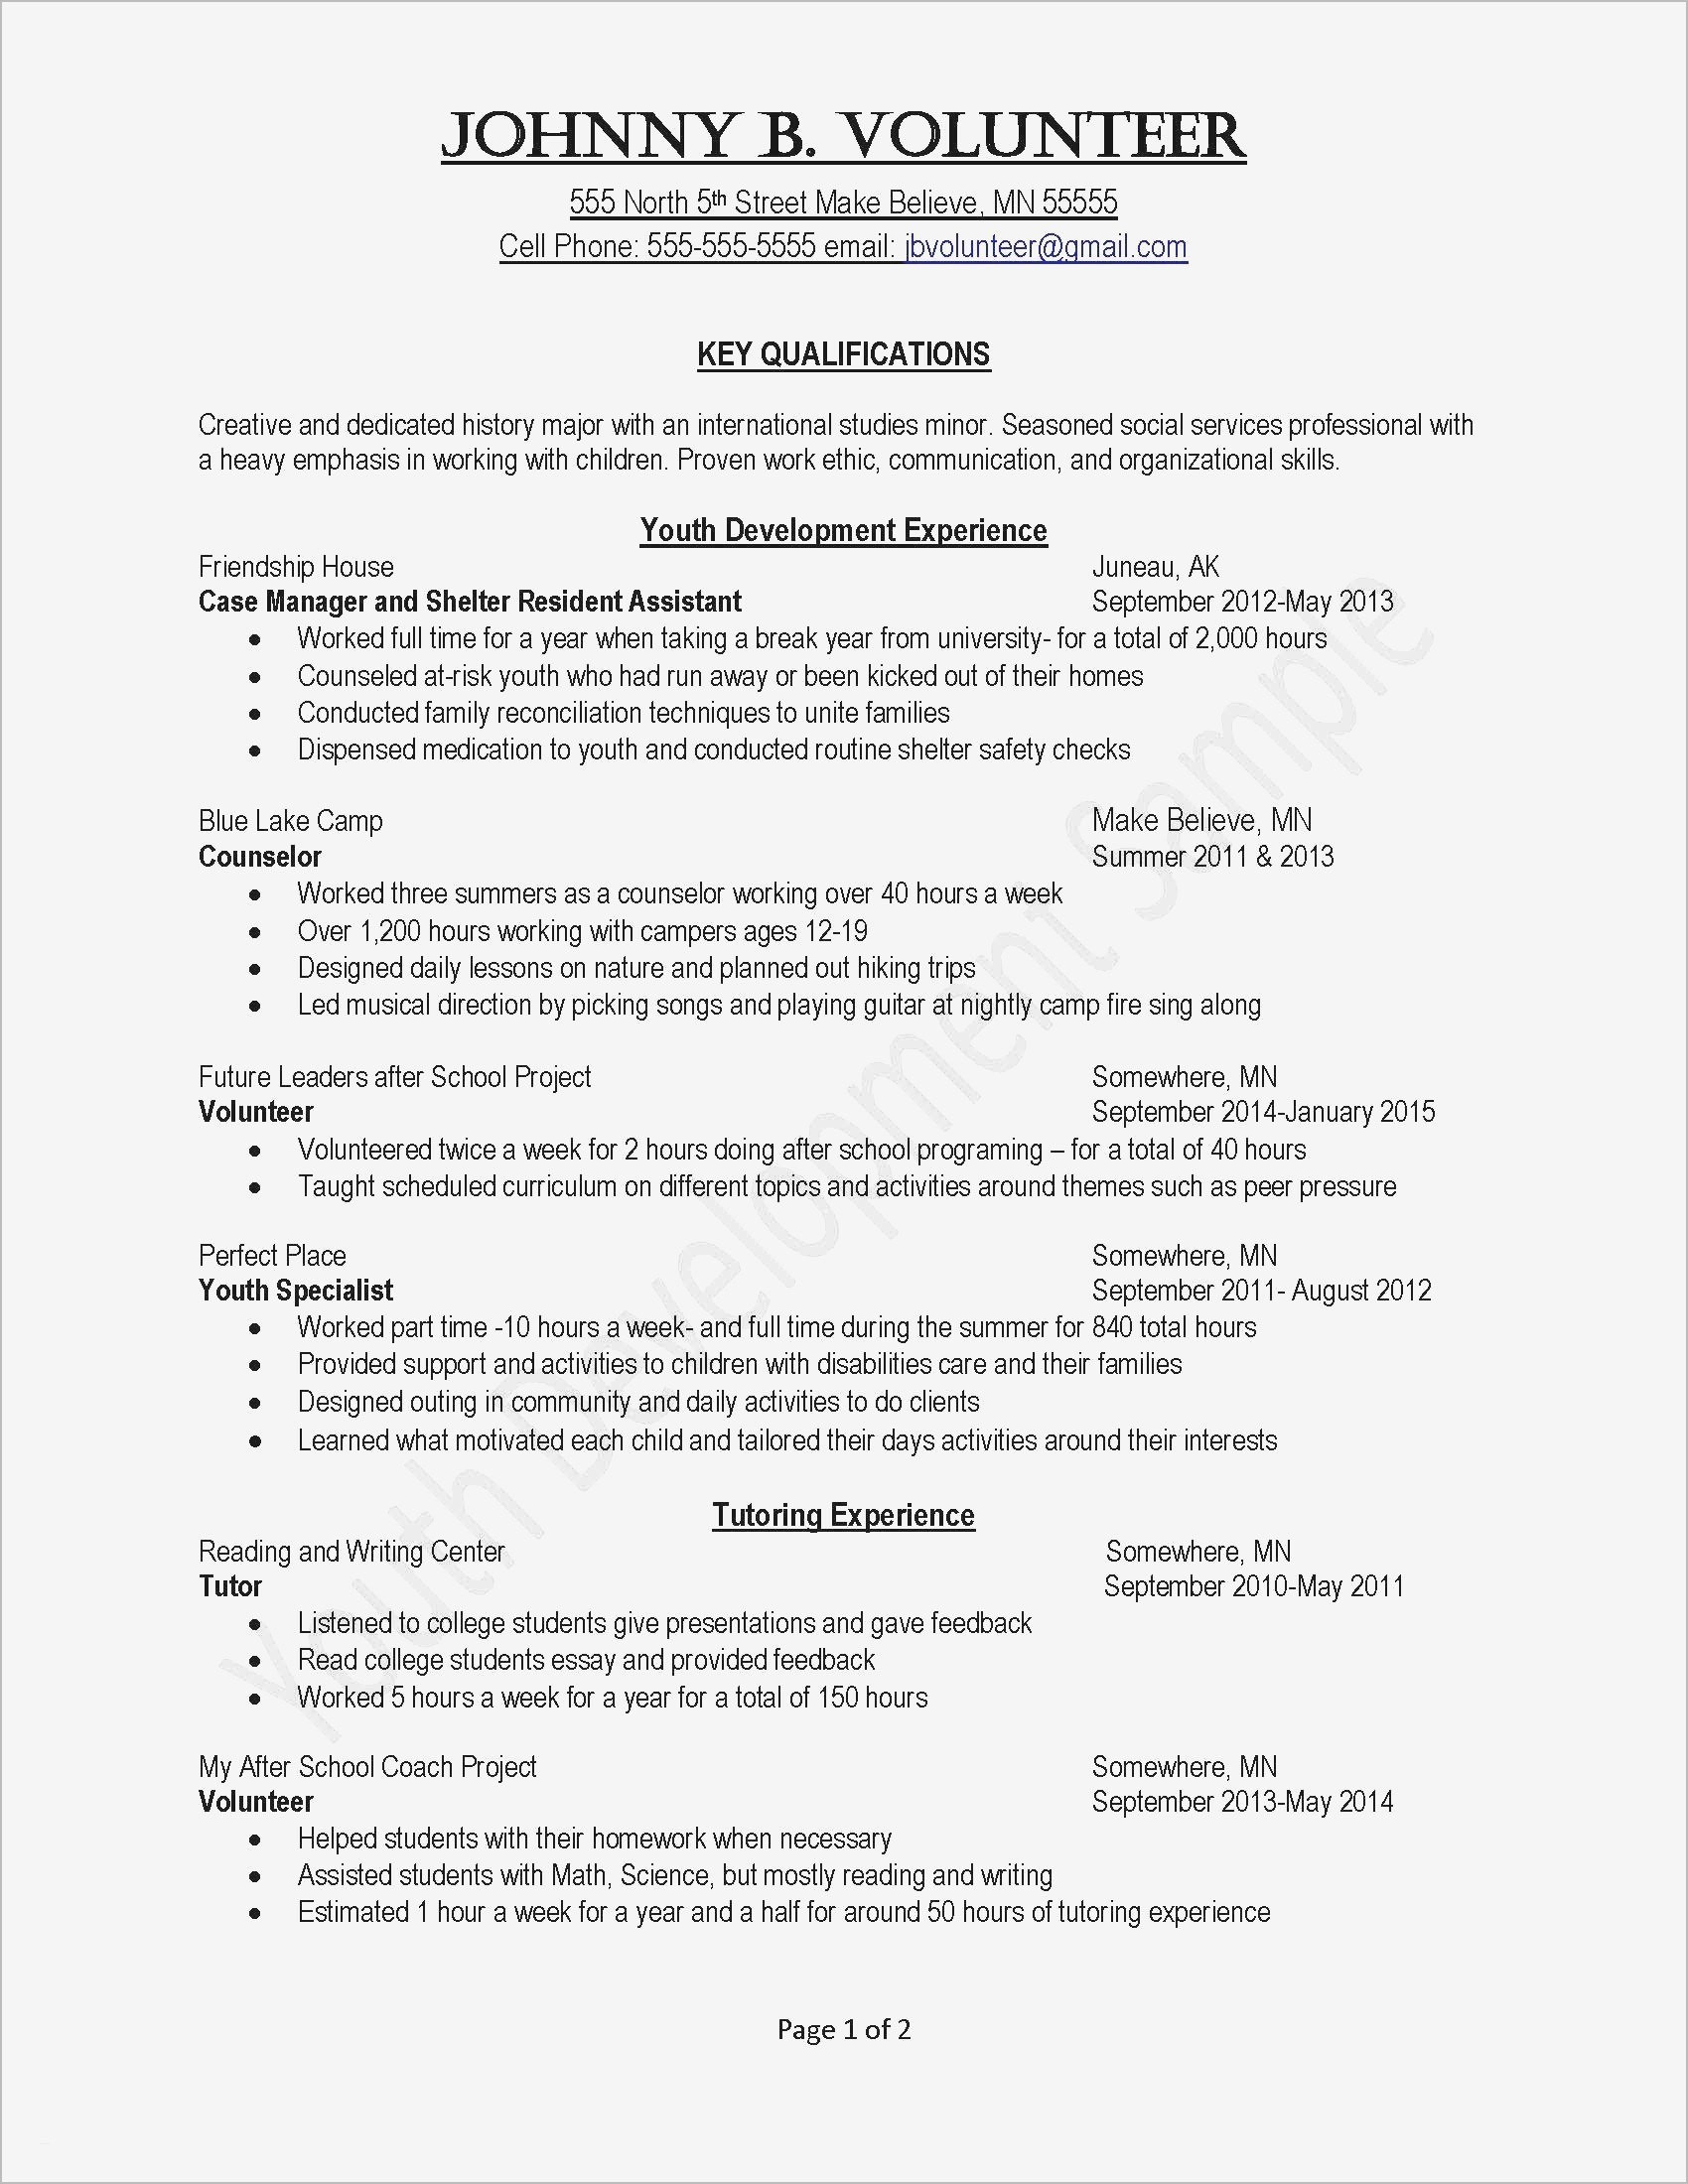 Resume and Cover Letter Template - Cover Letter New Resume Cover Letters Examples New Job Fer Letter